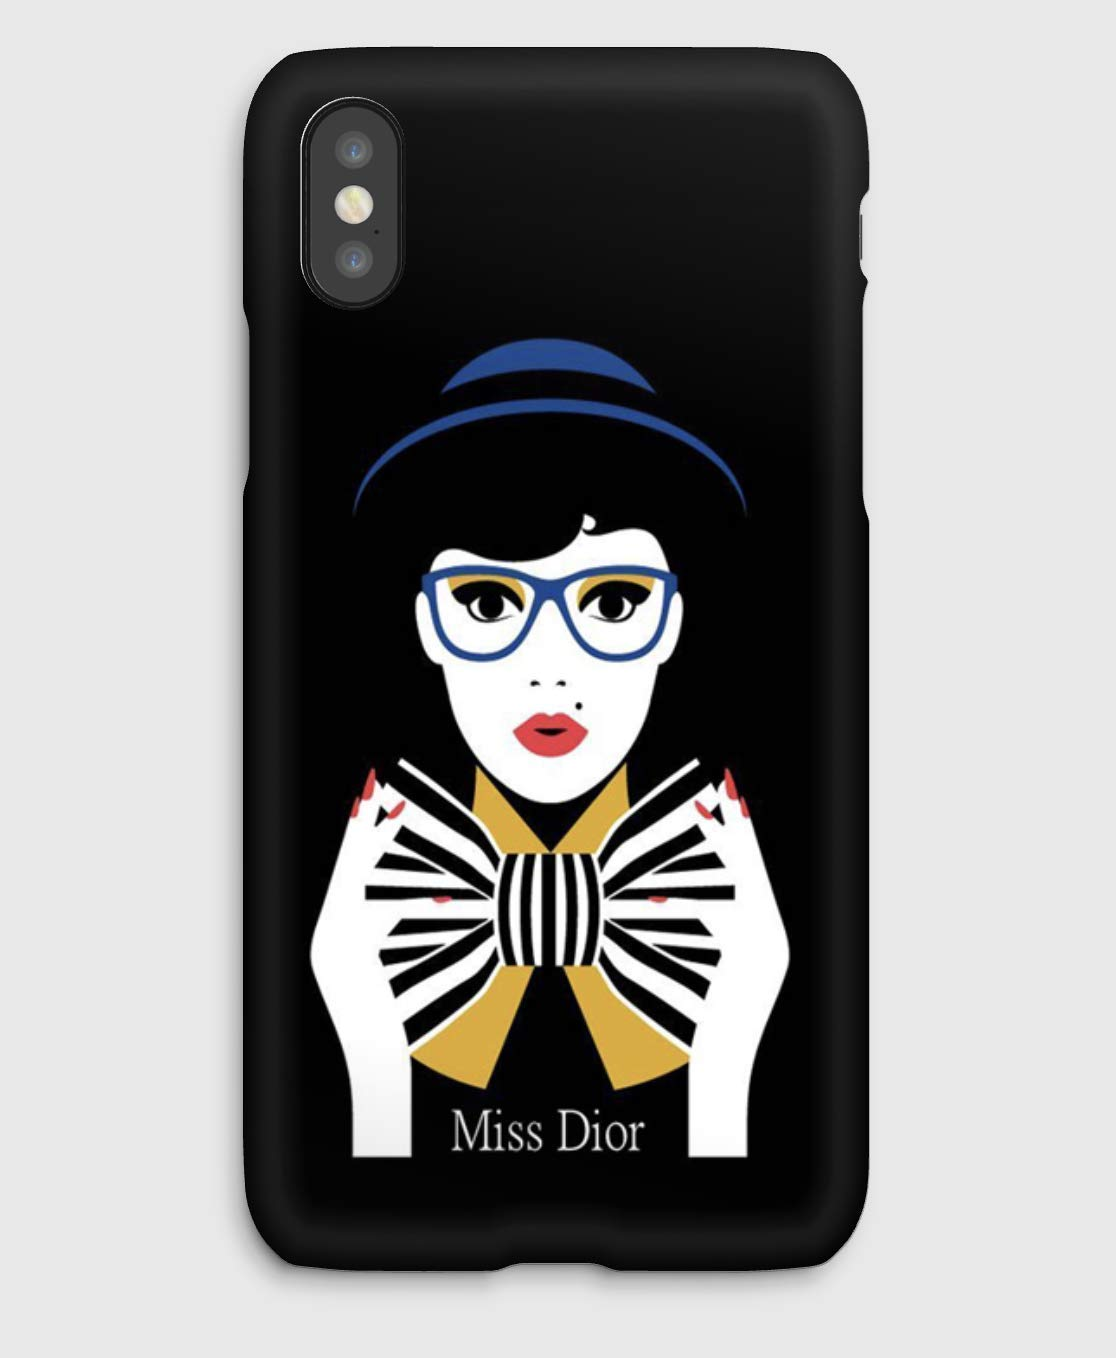 Miss Dior, coque pour iPhone XS, XS Max, XR, X, 8, 8+, 7, 7+, 6S, 6, 6S+, 6+, 5C, 5, 5S, 5SE, 4S, 4,